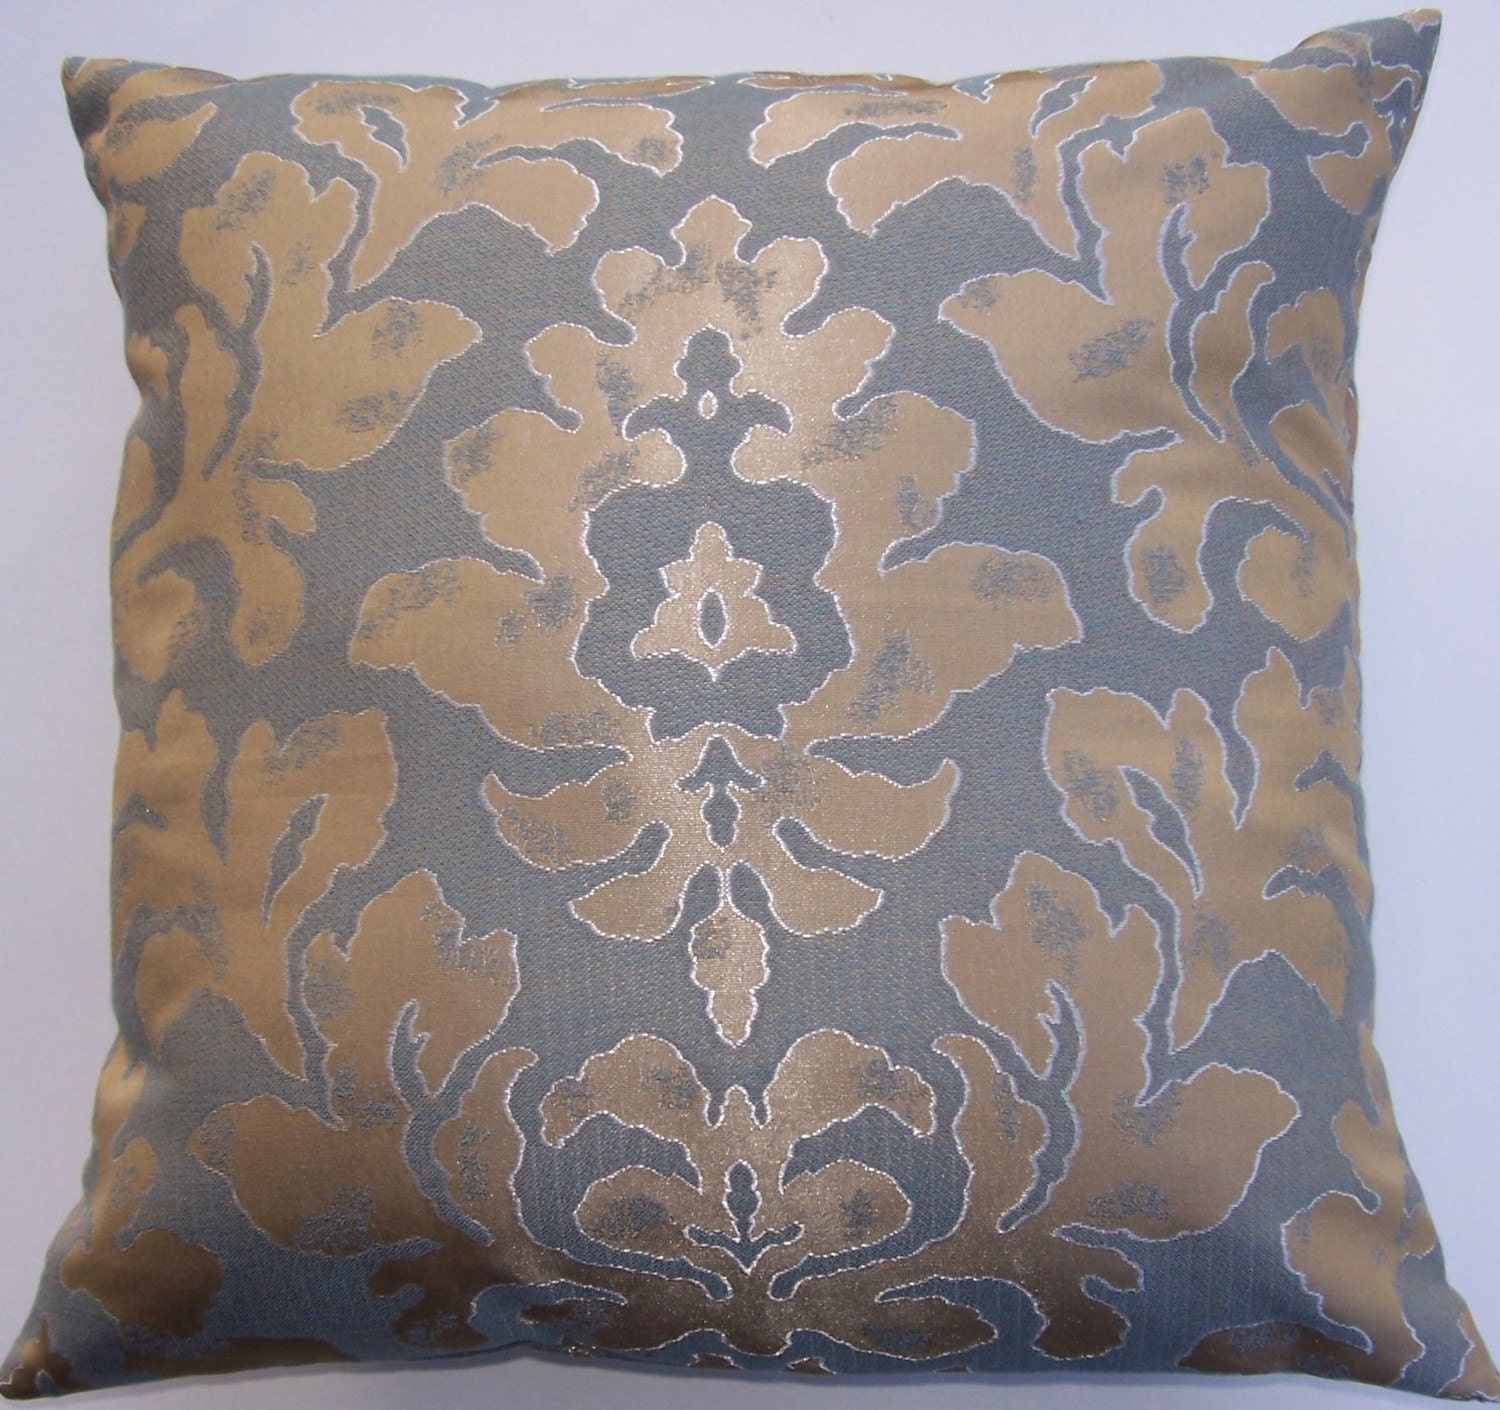 Throw Pillows Damask : Silver and Gold Damask Throw Pillow Cover 16 x 16